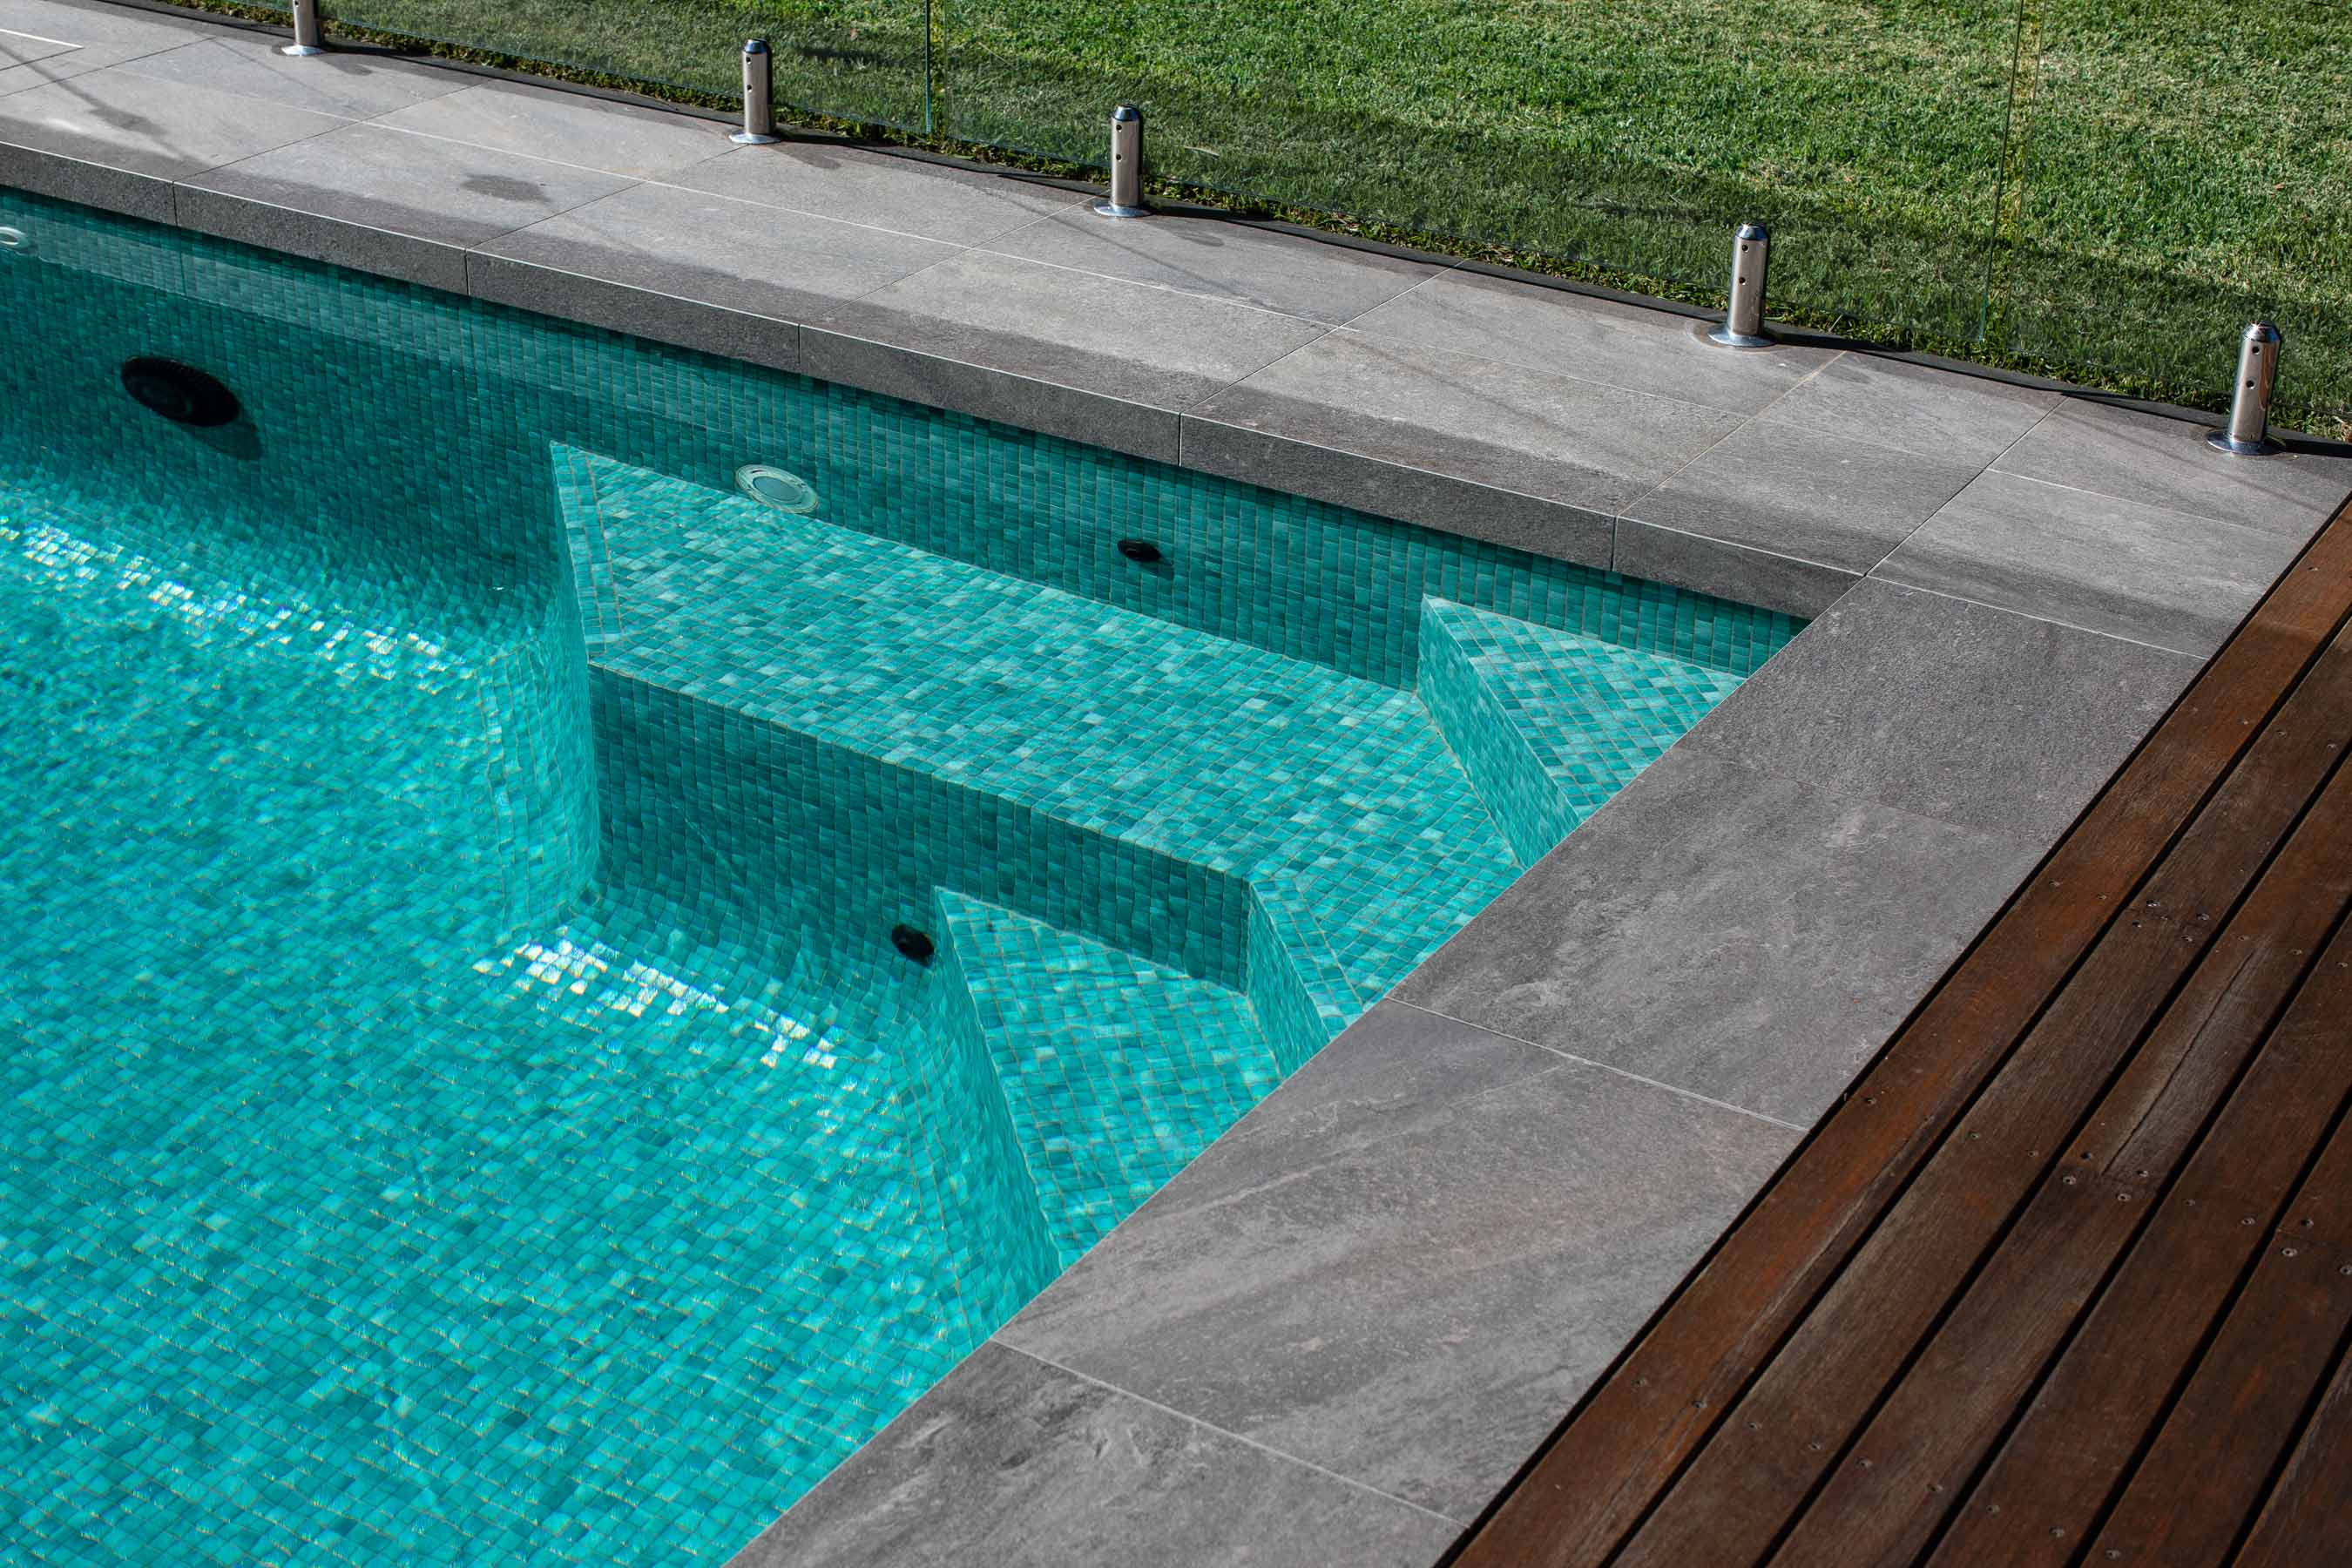 Porcelain-Pavers-Outdoor-20 Gallery fossil-black-03